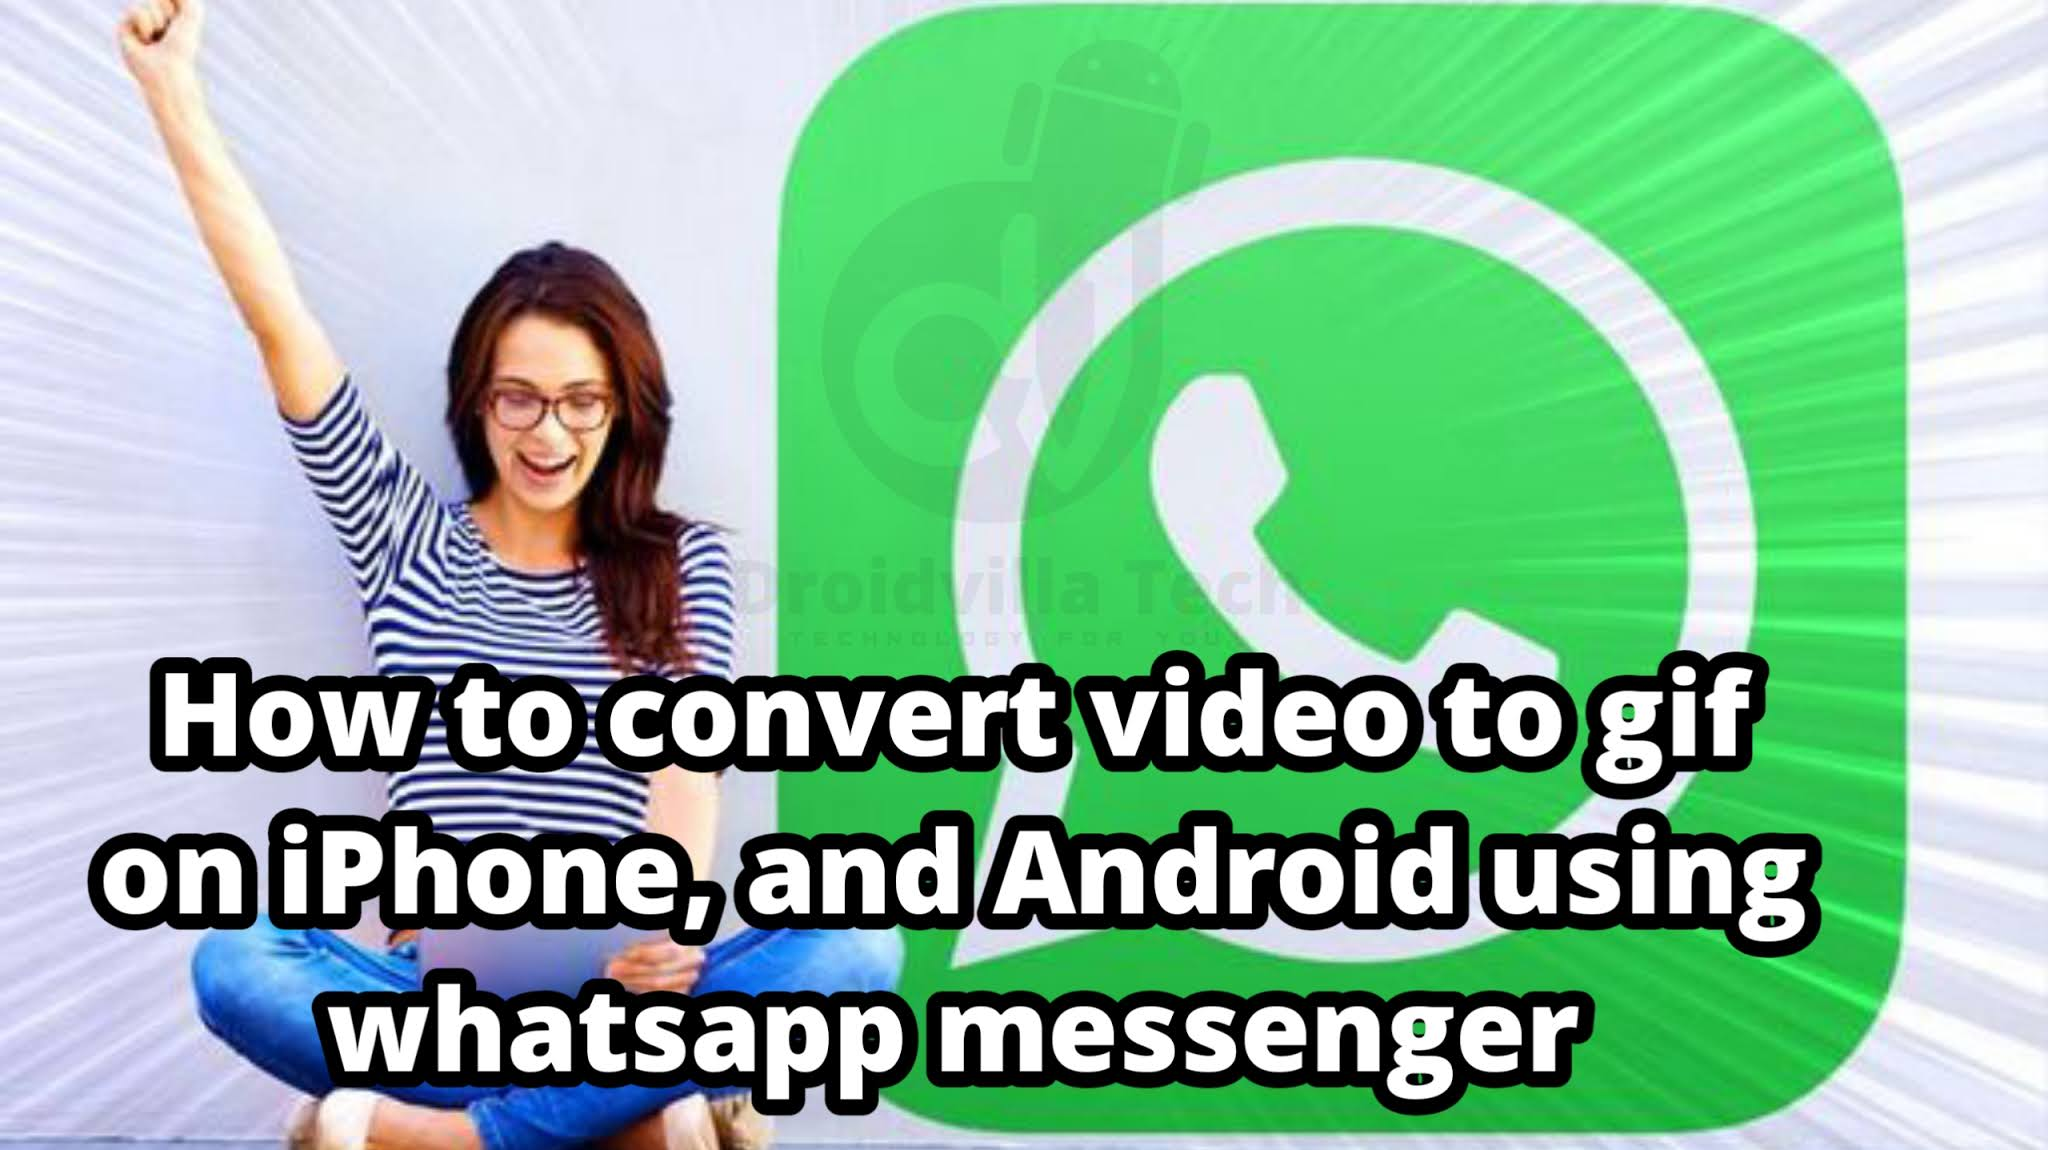 How to convert videos to gif on iPhone, and Android without third-party app